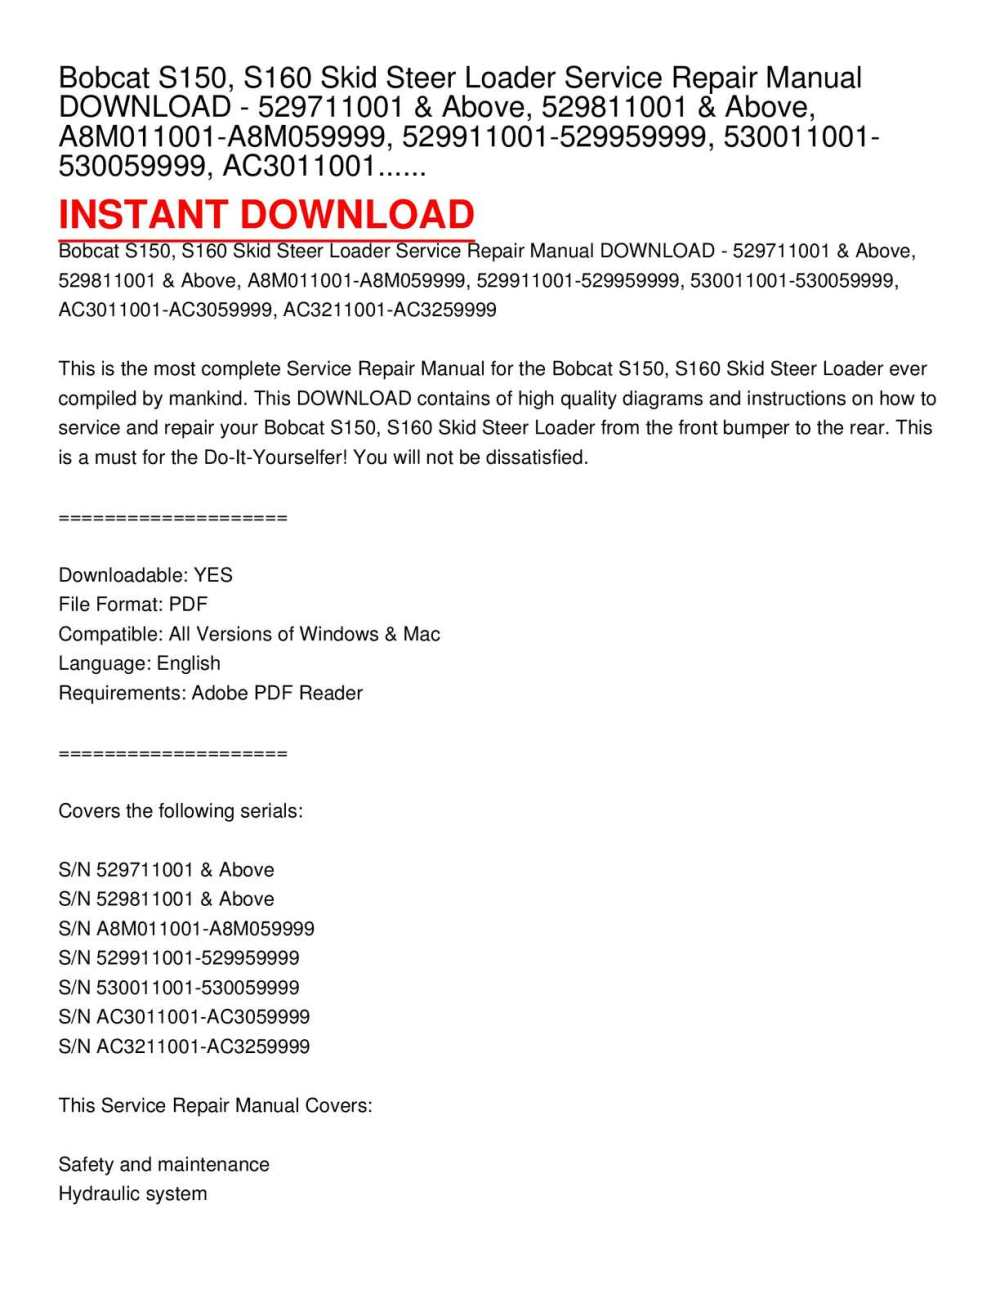 medium resolution of calam o bobcat s150 s160 skid steer loader service repair manual download 529711001 above 529811001 above a8m011001 a8m059999